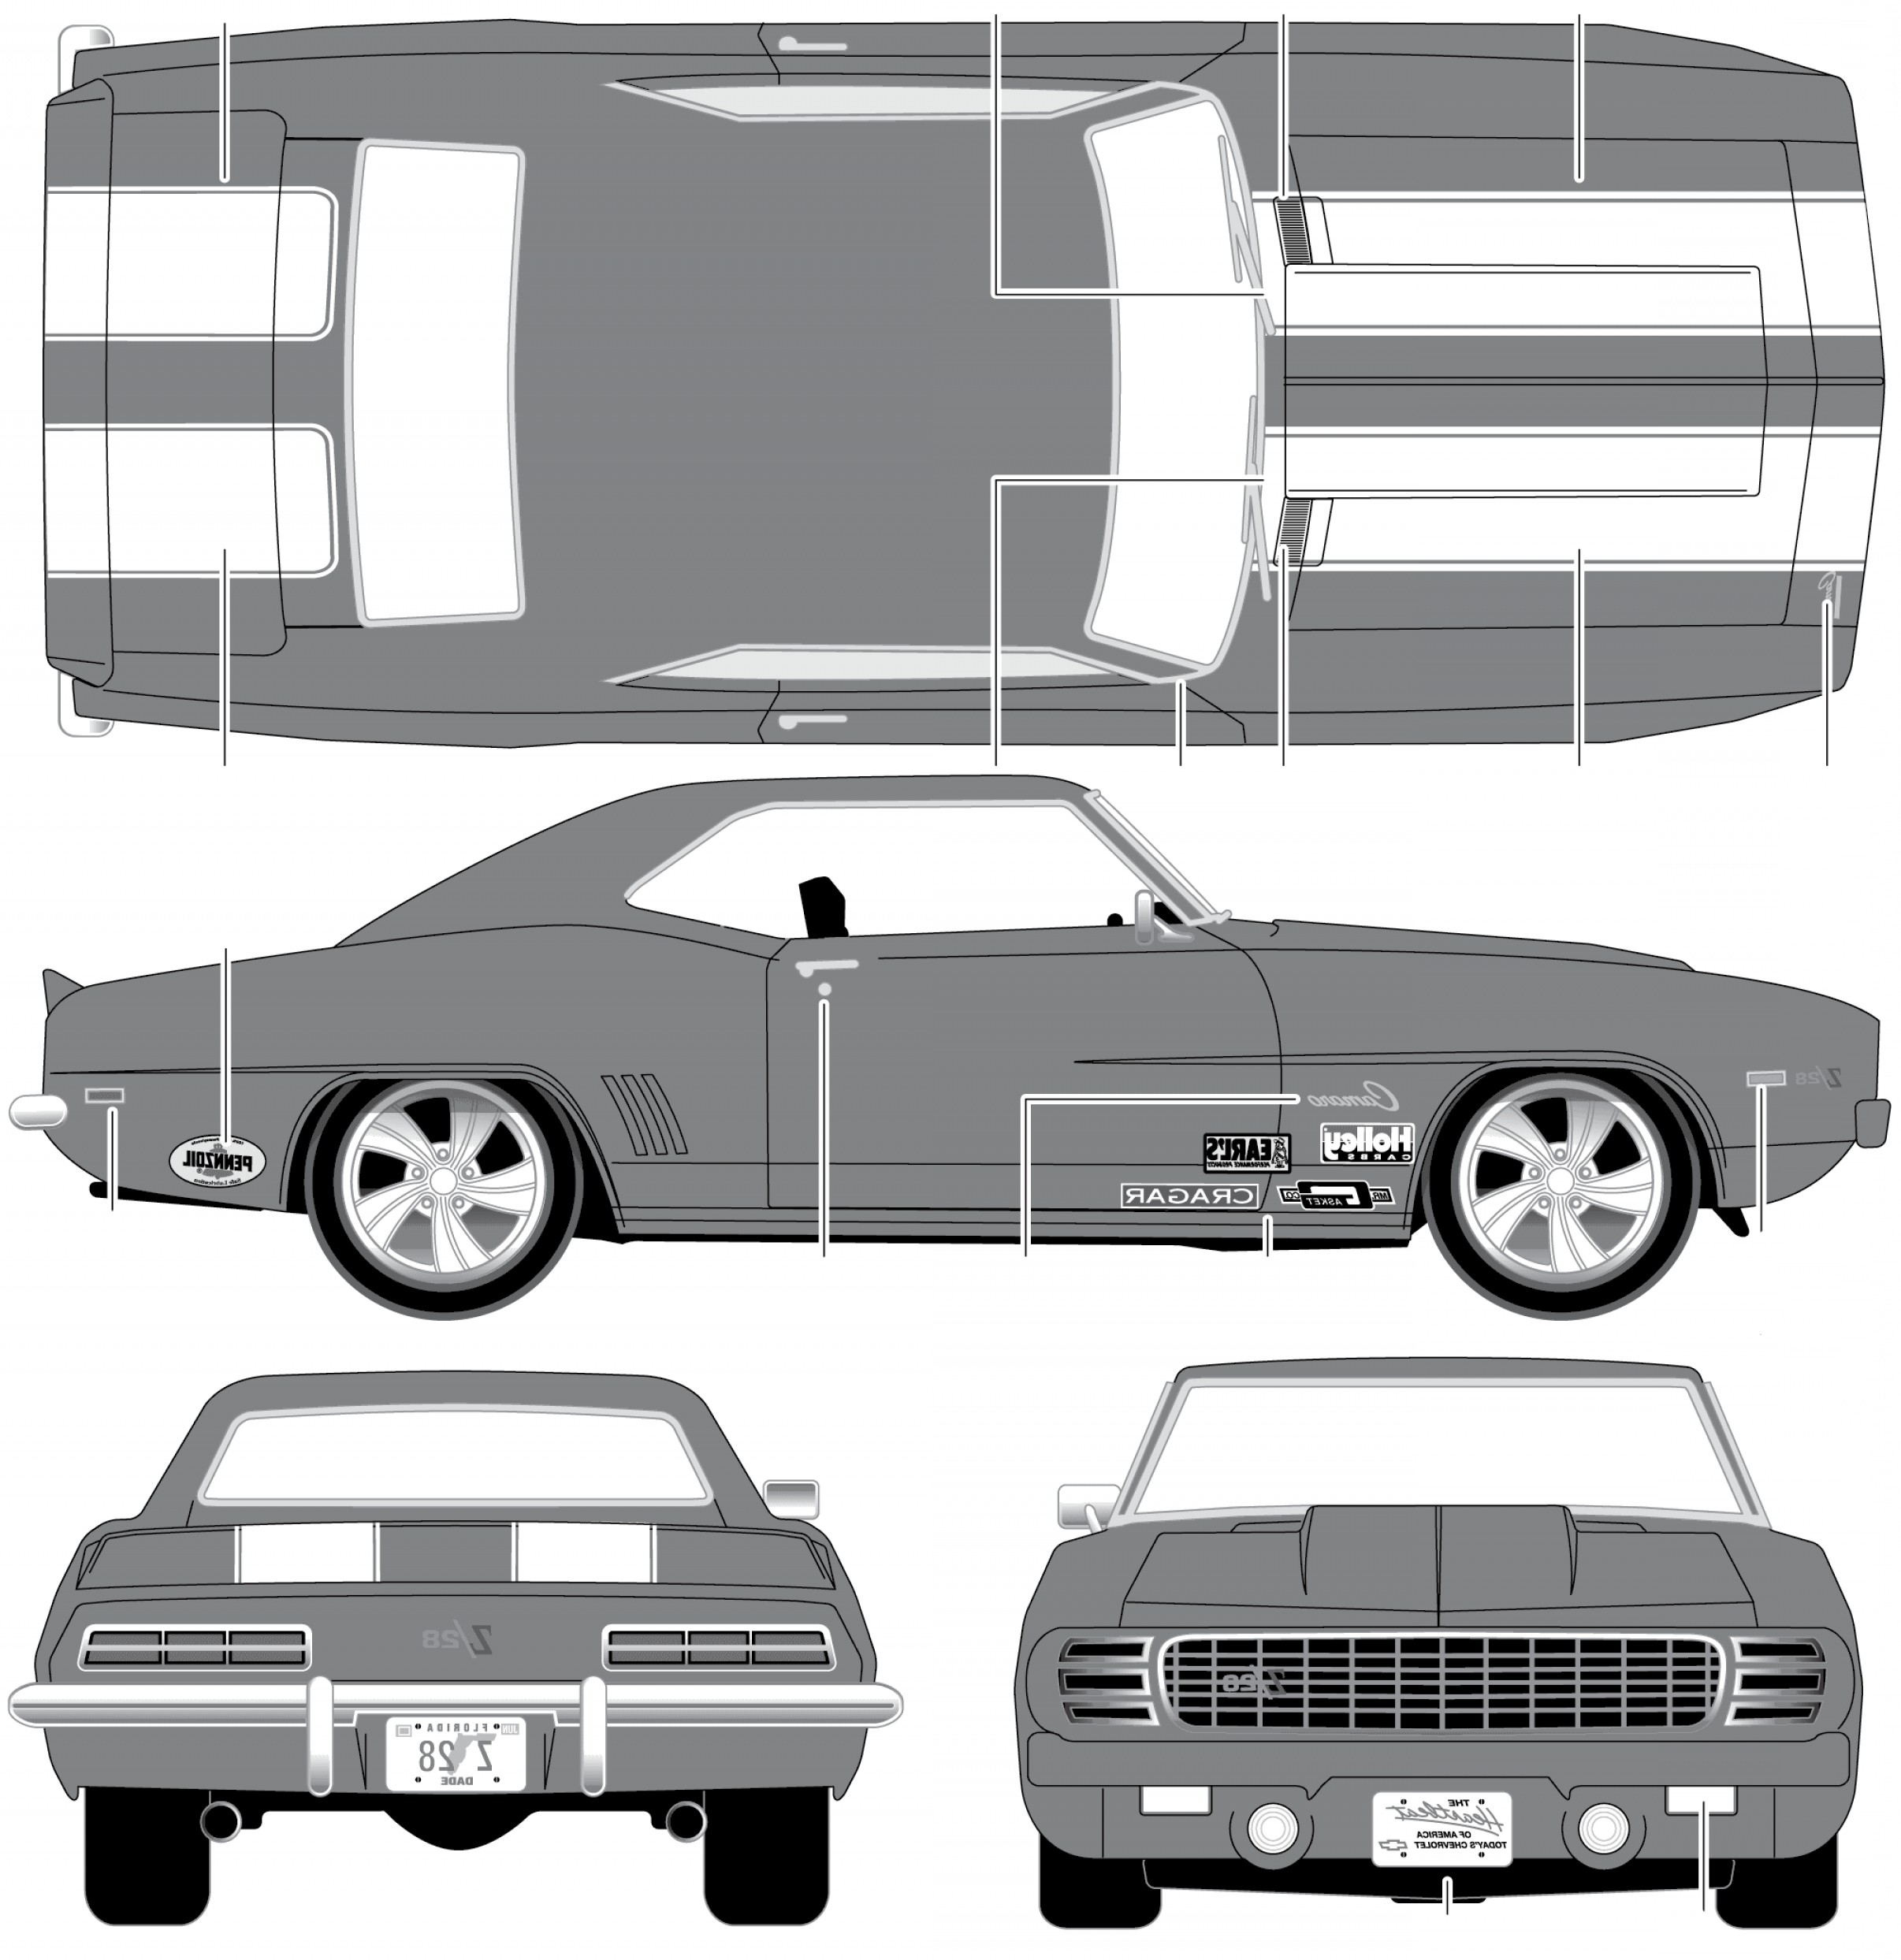 1969 Camaro Vector: Chevrolet Camaro Z Coupe Blueprints